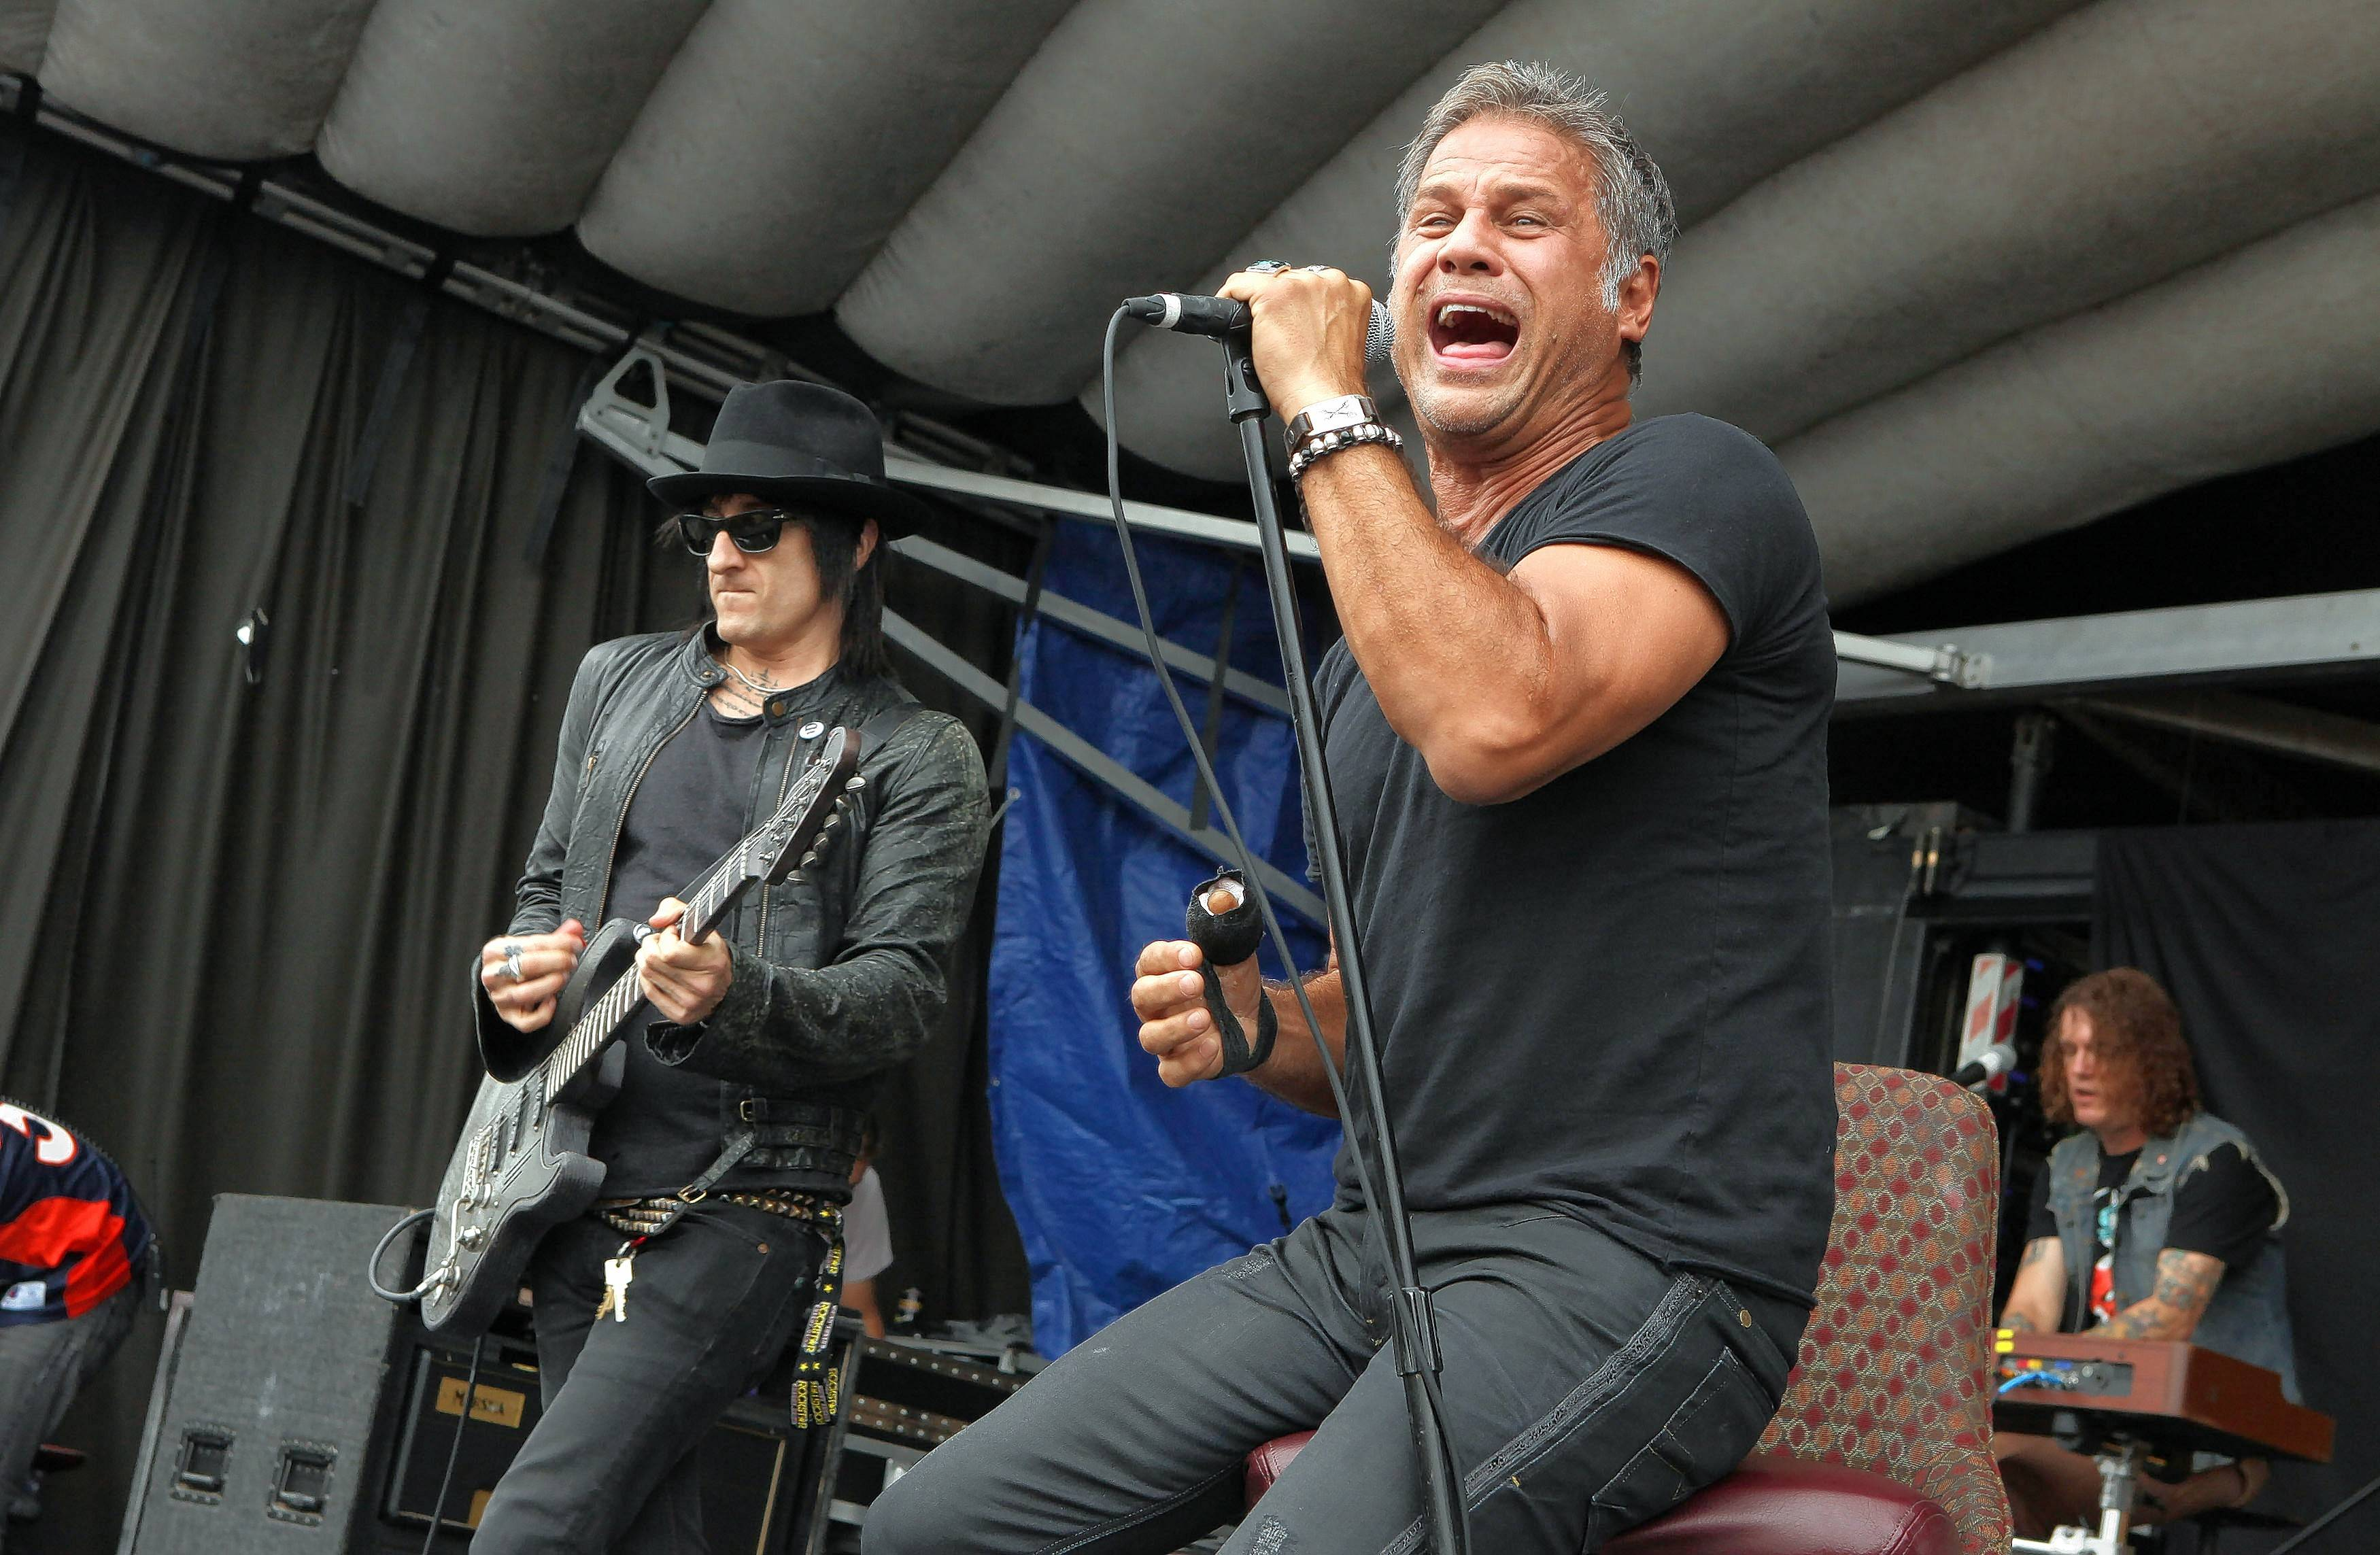 Richard Fortus, Jon Stevens and Dizzy Reed of The Dead Daisies, which performs at the Arcada Theatre in St. Charles on Thursday, Aug. 10.